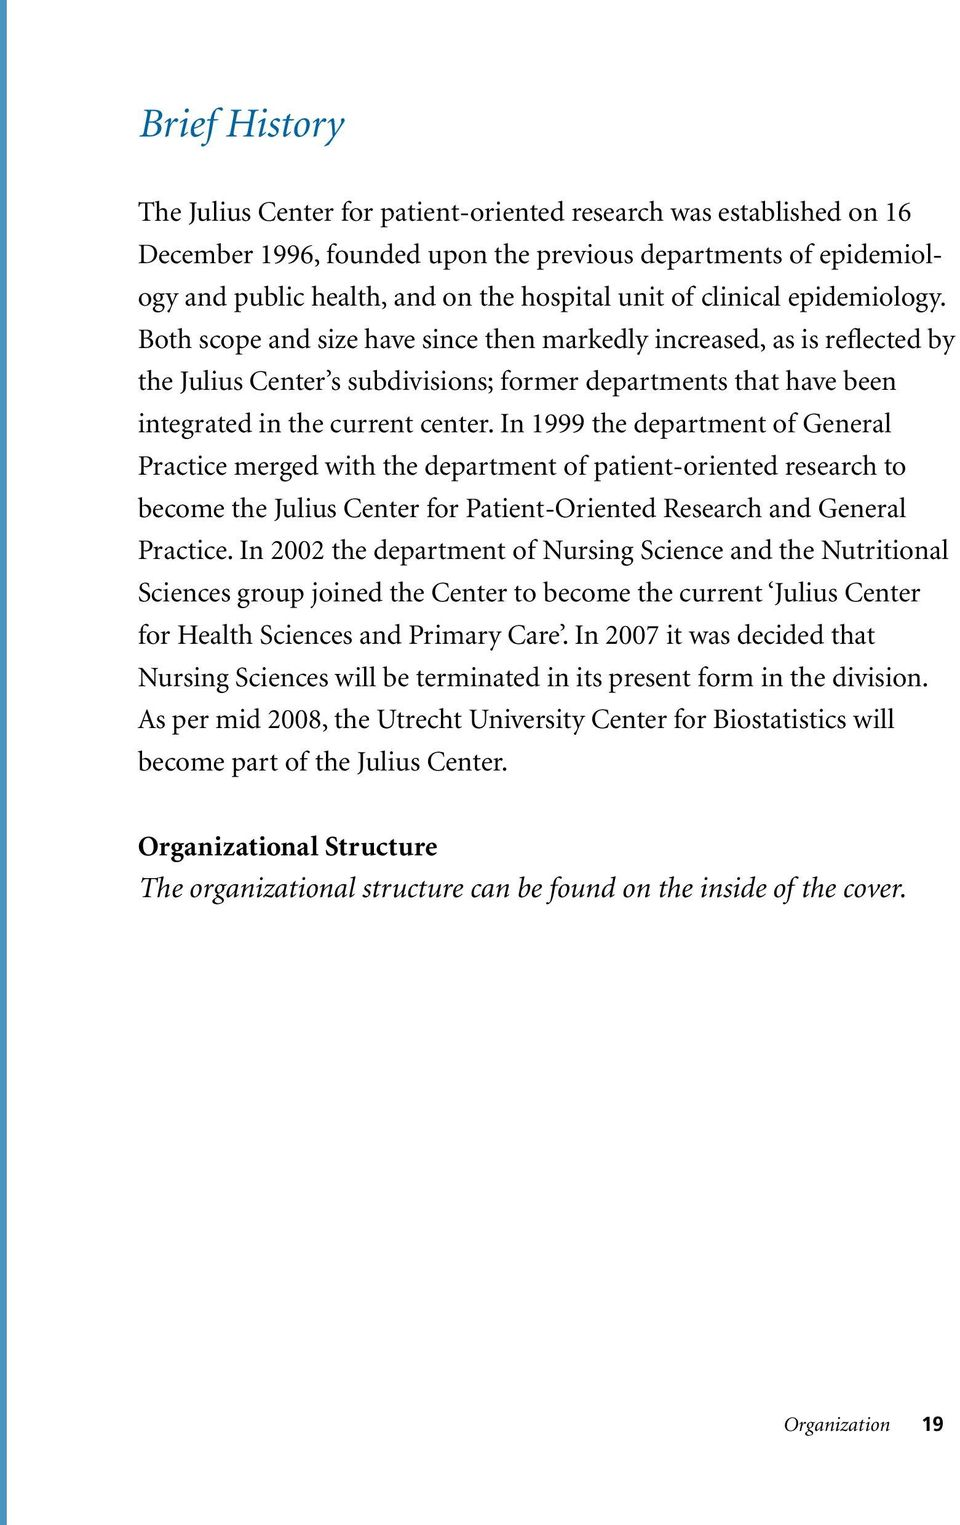 In 1999 the department of General Practice merged with the department of patient-oriented research to become the Julius Center for Patient-Oriented Research and General Practice.